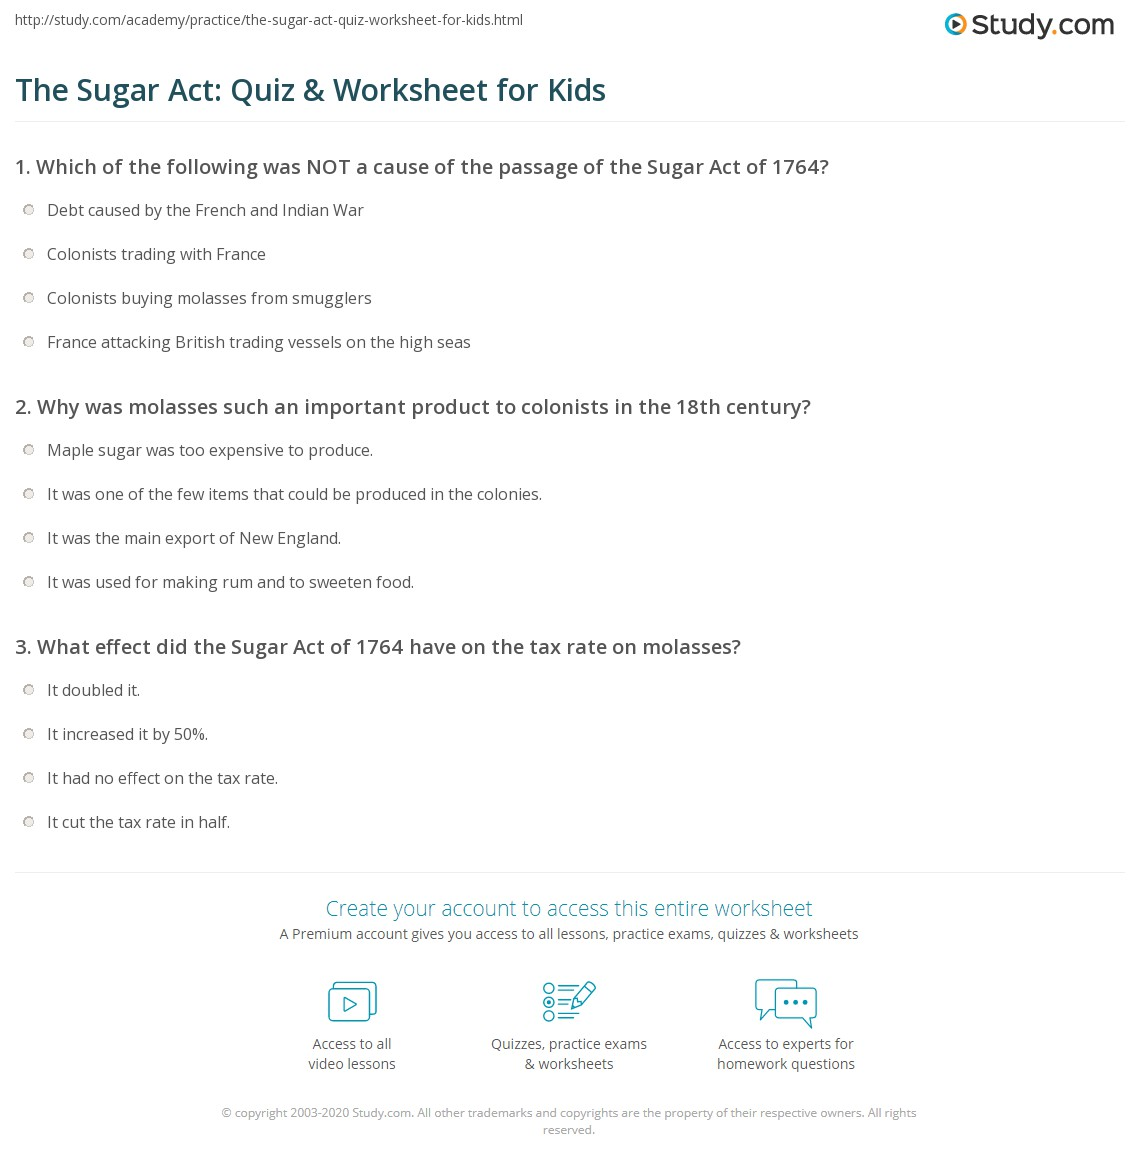 The Sugar Act Quiz Amp Worksheet For Kids